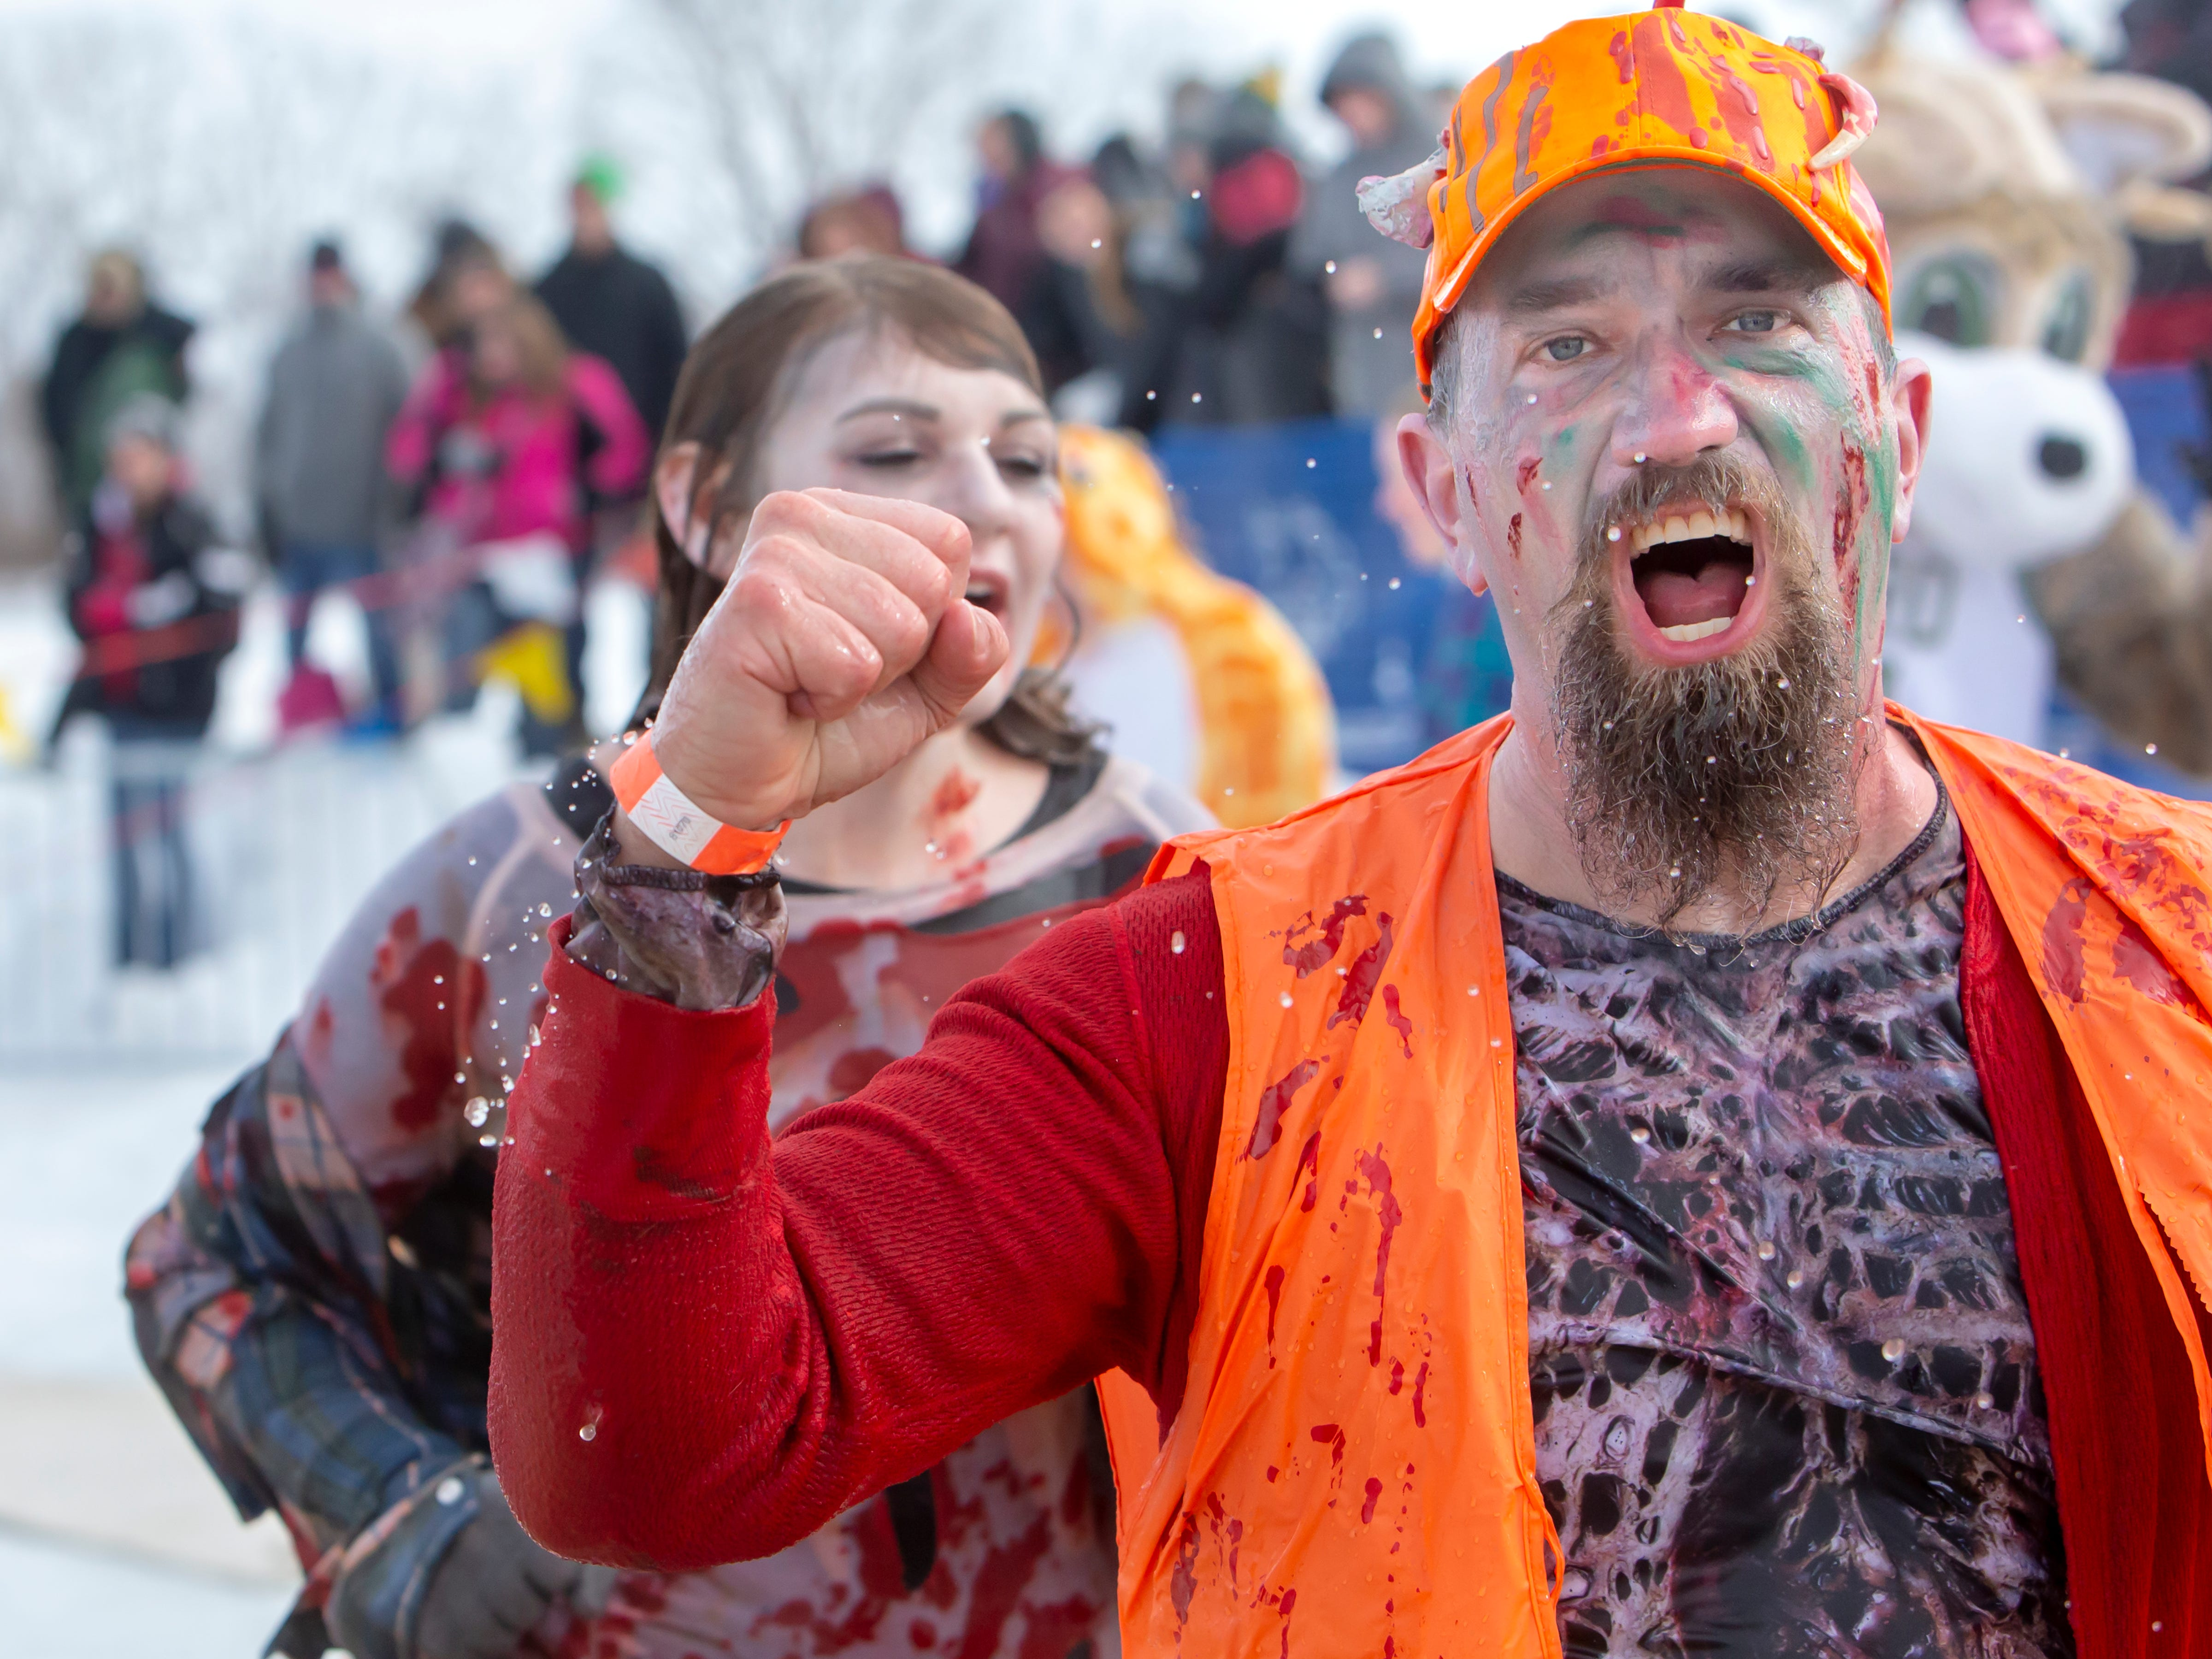 People react after their plunge into the freezing water during the Special Olympics Wisconsin Polar Plunge in Oshkosh, Wis., on Saturday, February 16, 2019, at Miller's Bay in Menominee Park.